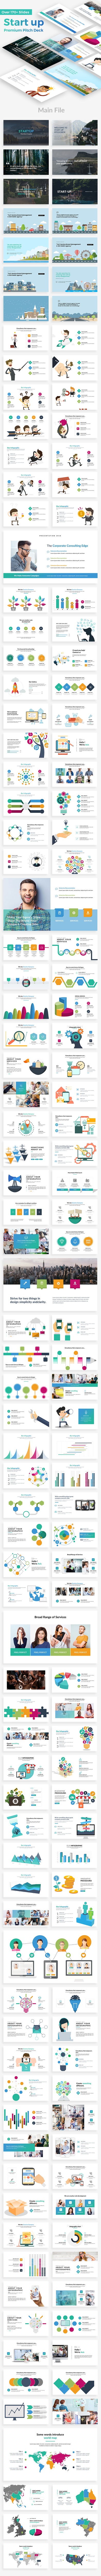 Startup Pitch Deck Google Slide Template - Google Slides Presentation Templates